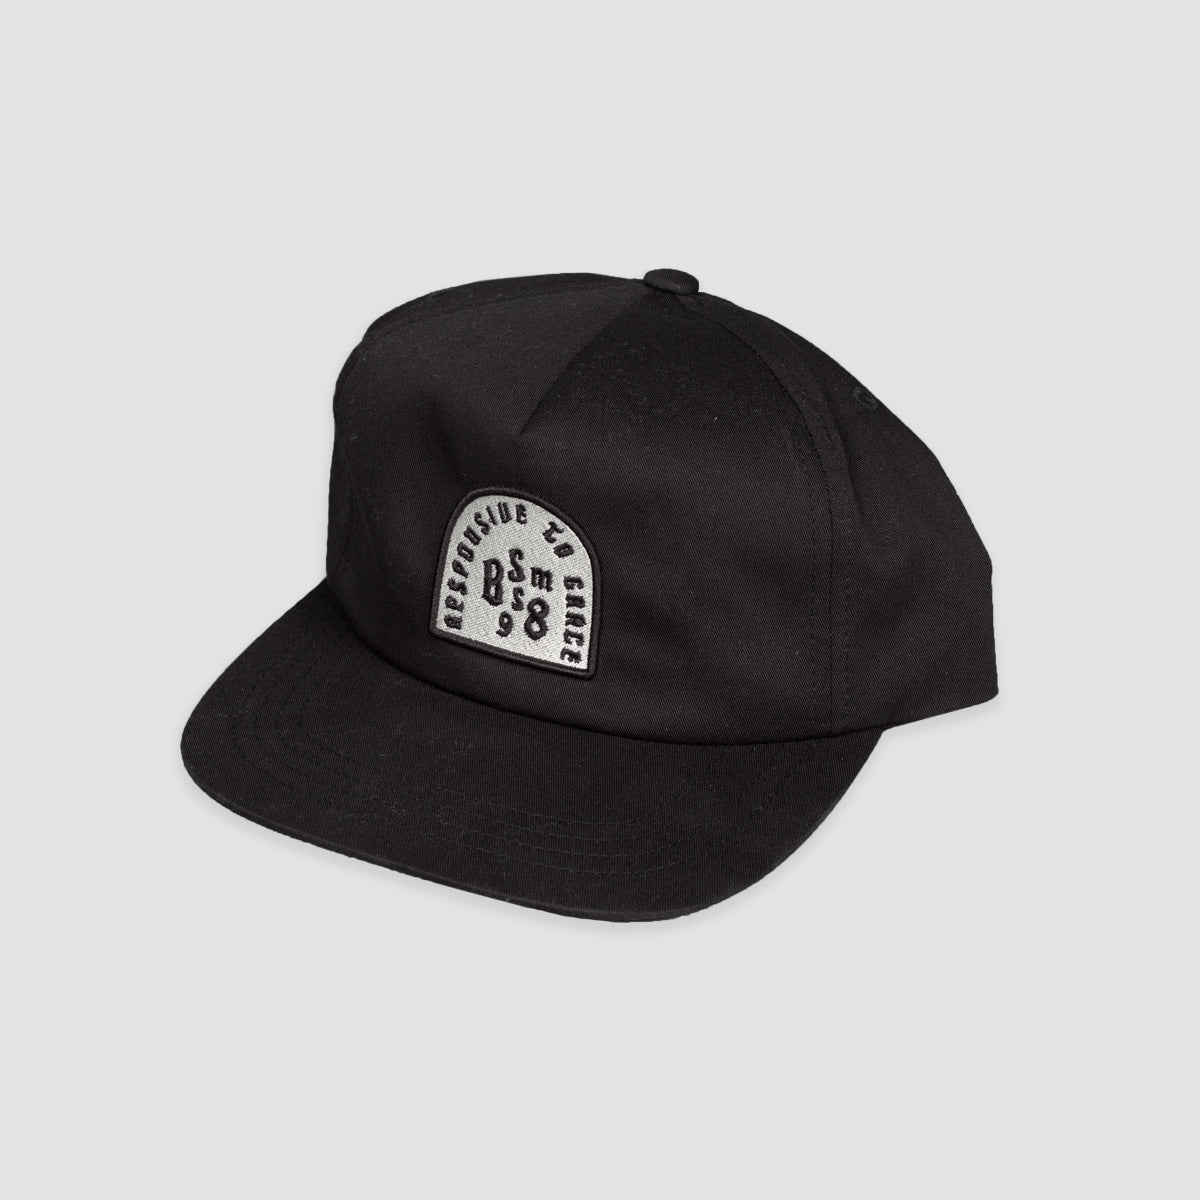 BSSM Responsive to Grace Hat